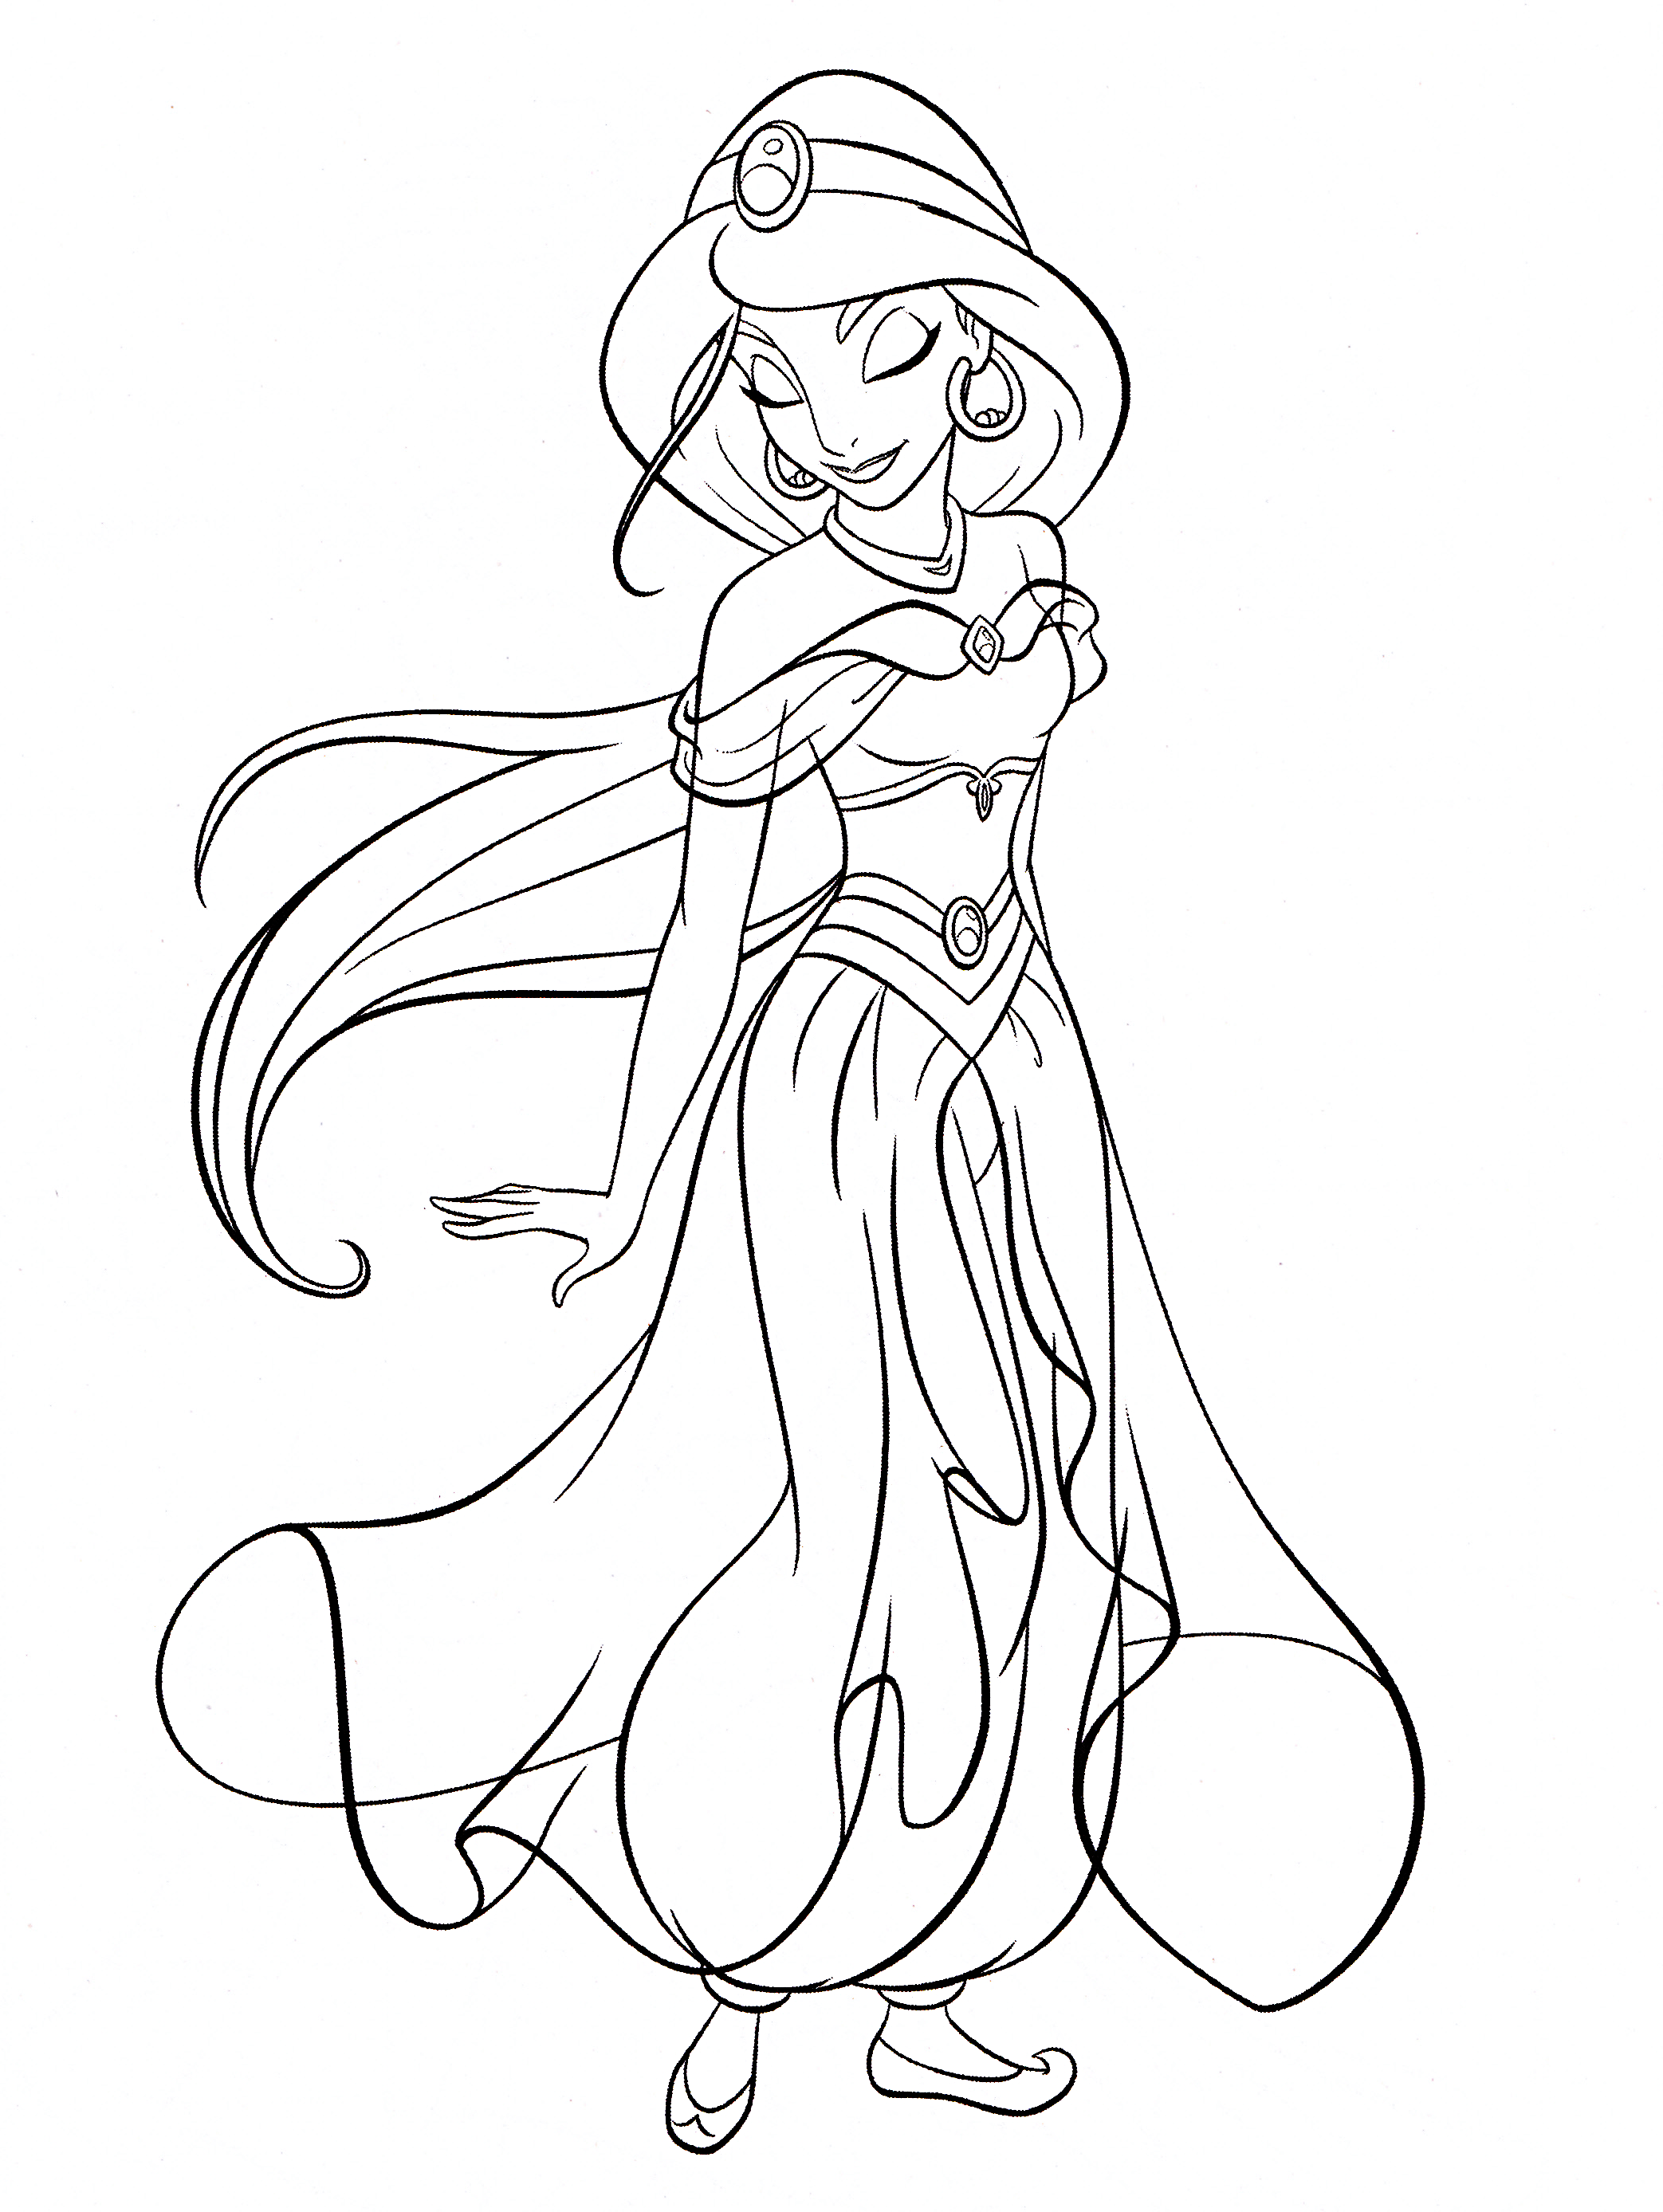 Walt disney characters images walt disney coloring pages for Jasmine the princess coloring pages